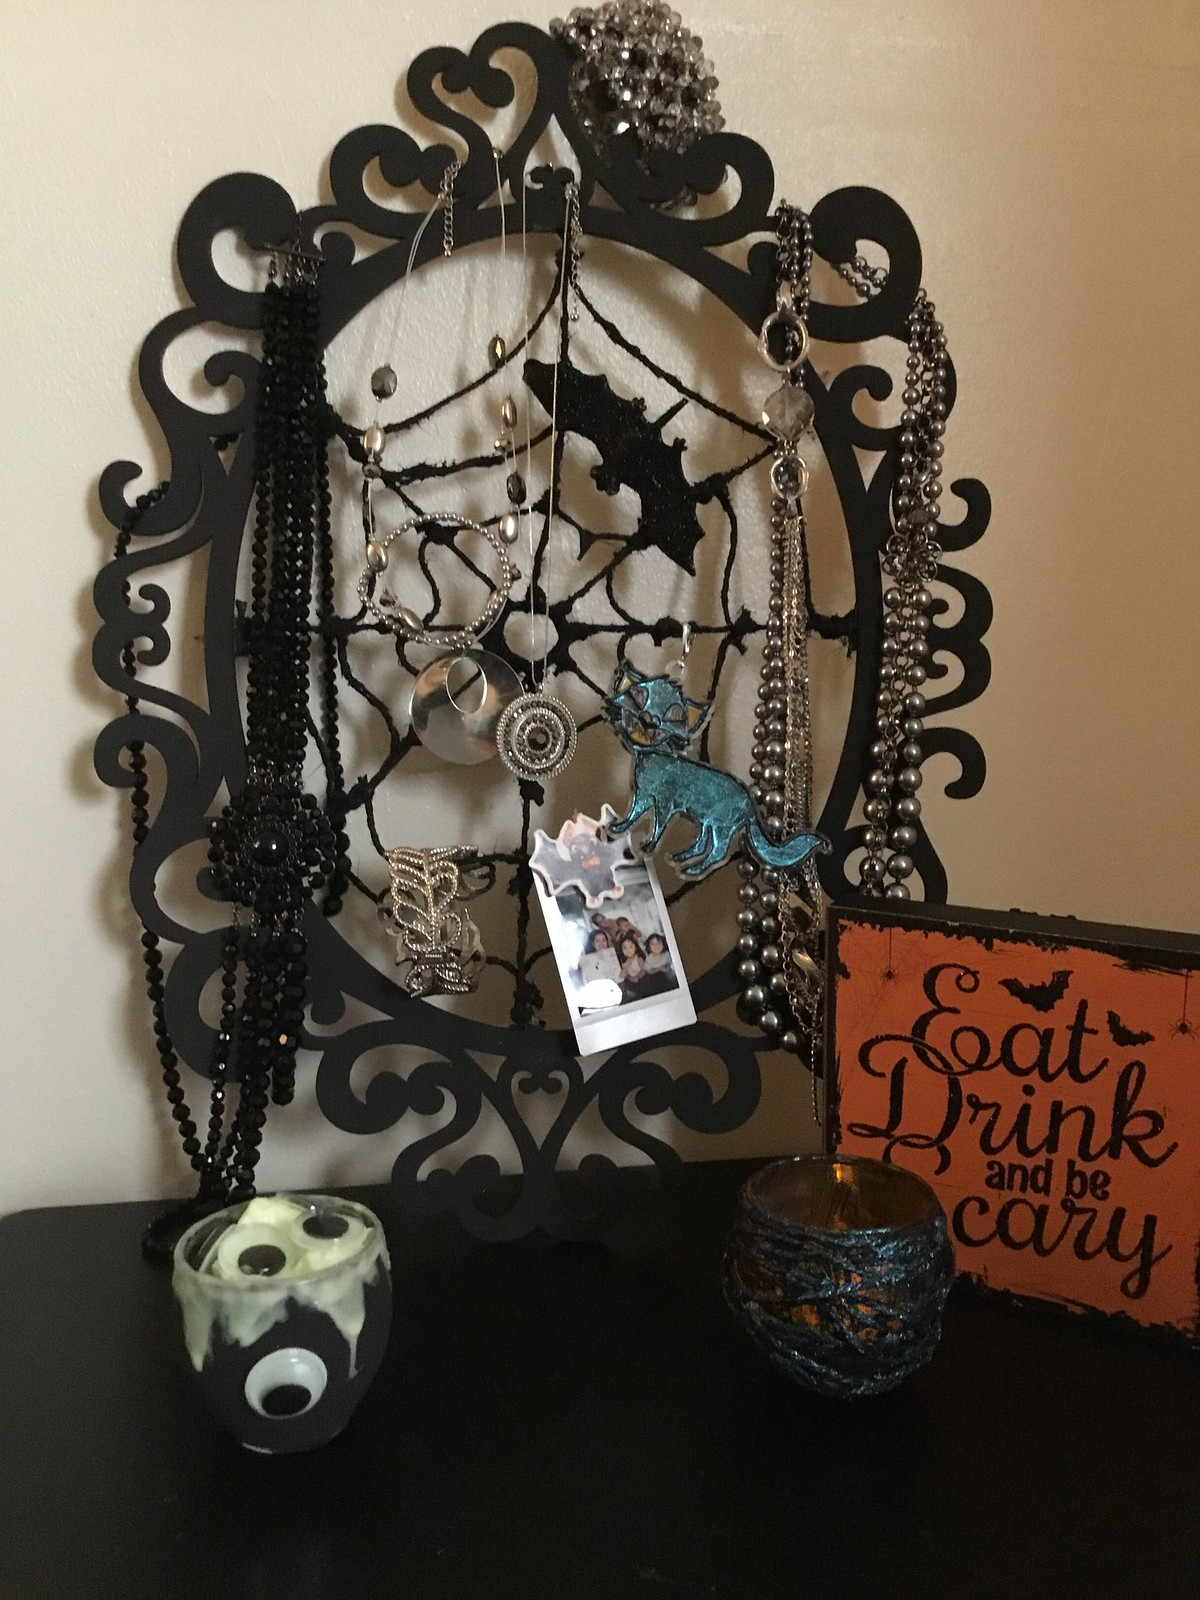 How to Make a Spiderweb Jewelry Holder Frame